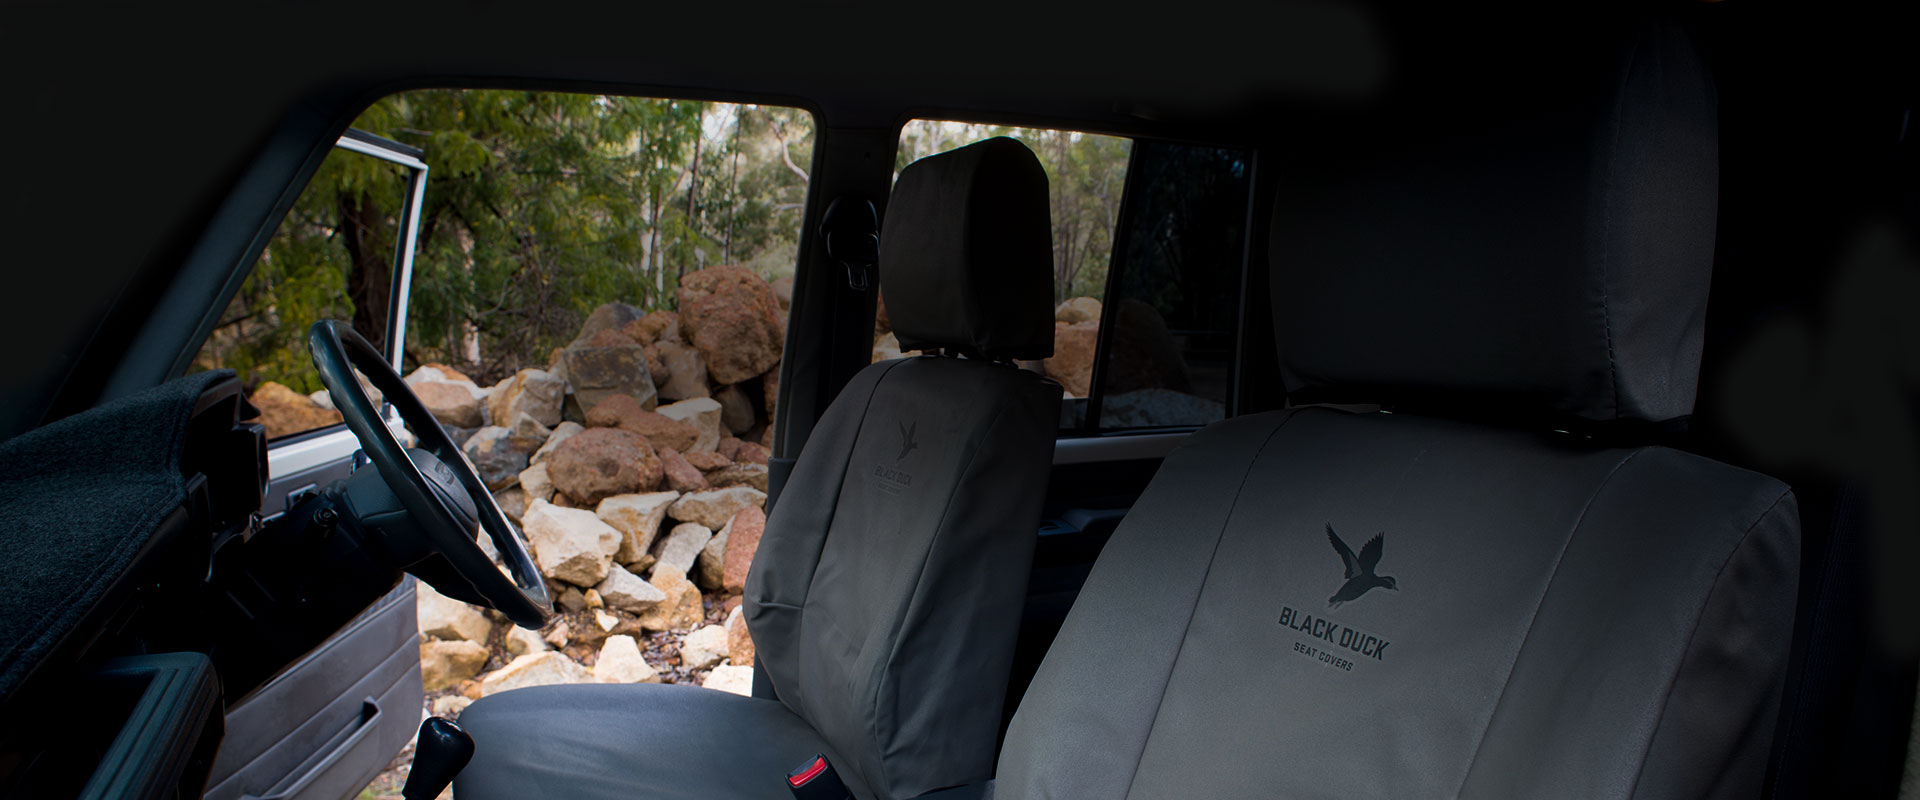 Black Duck seat covers